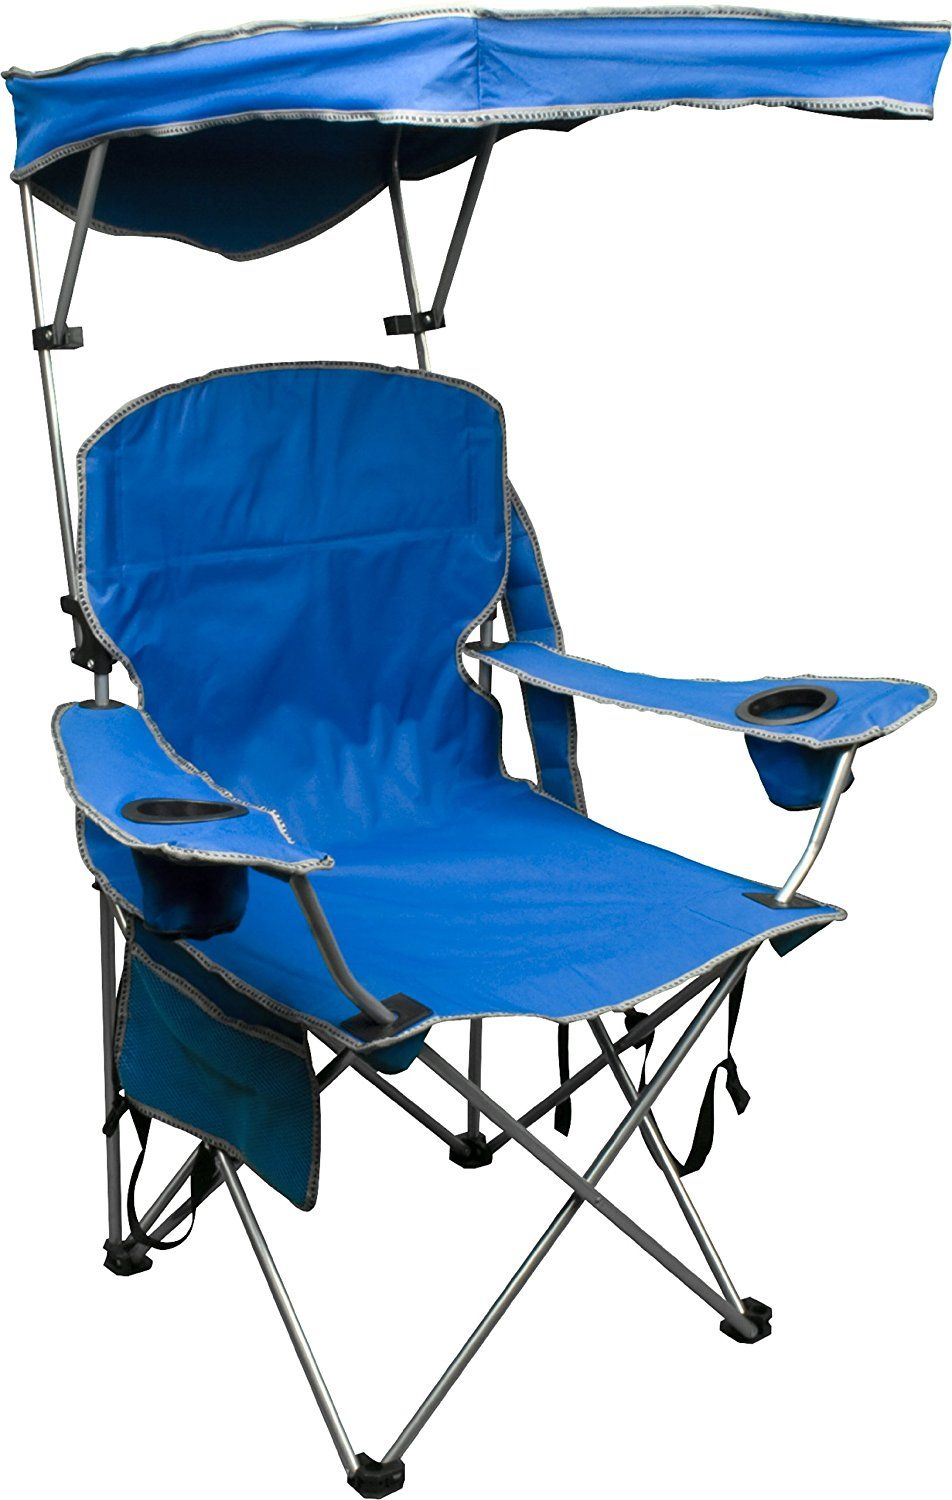 Fine Quik Shade Adjustable Canopy Folding Camp Chair My Pins Spiritservingveterans Wood Chair Design Ideas Spiritservingveteransorg